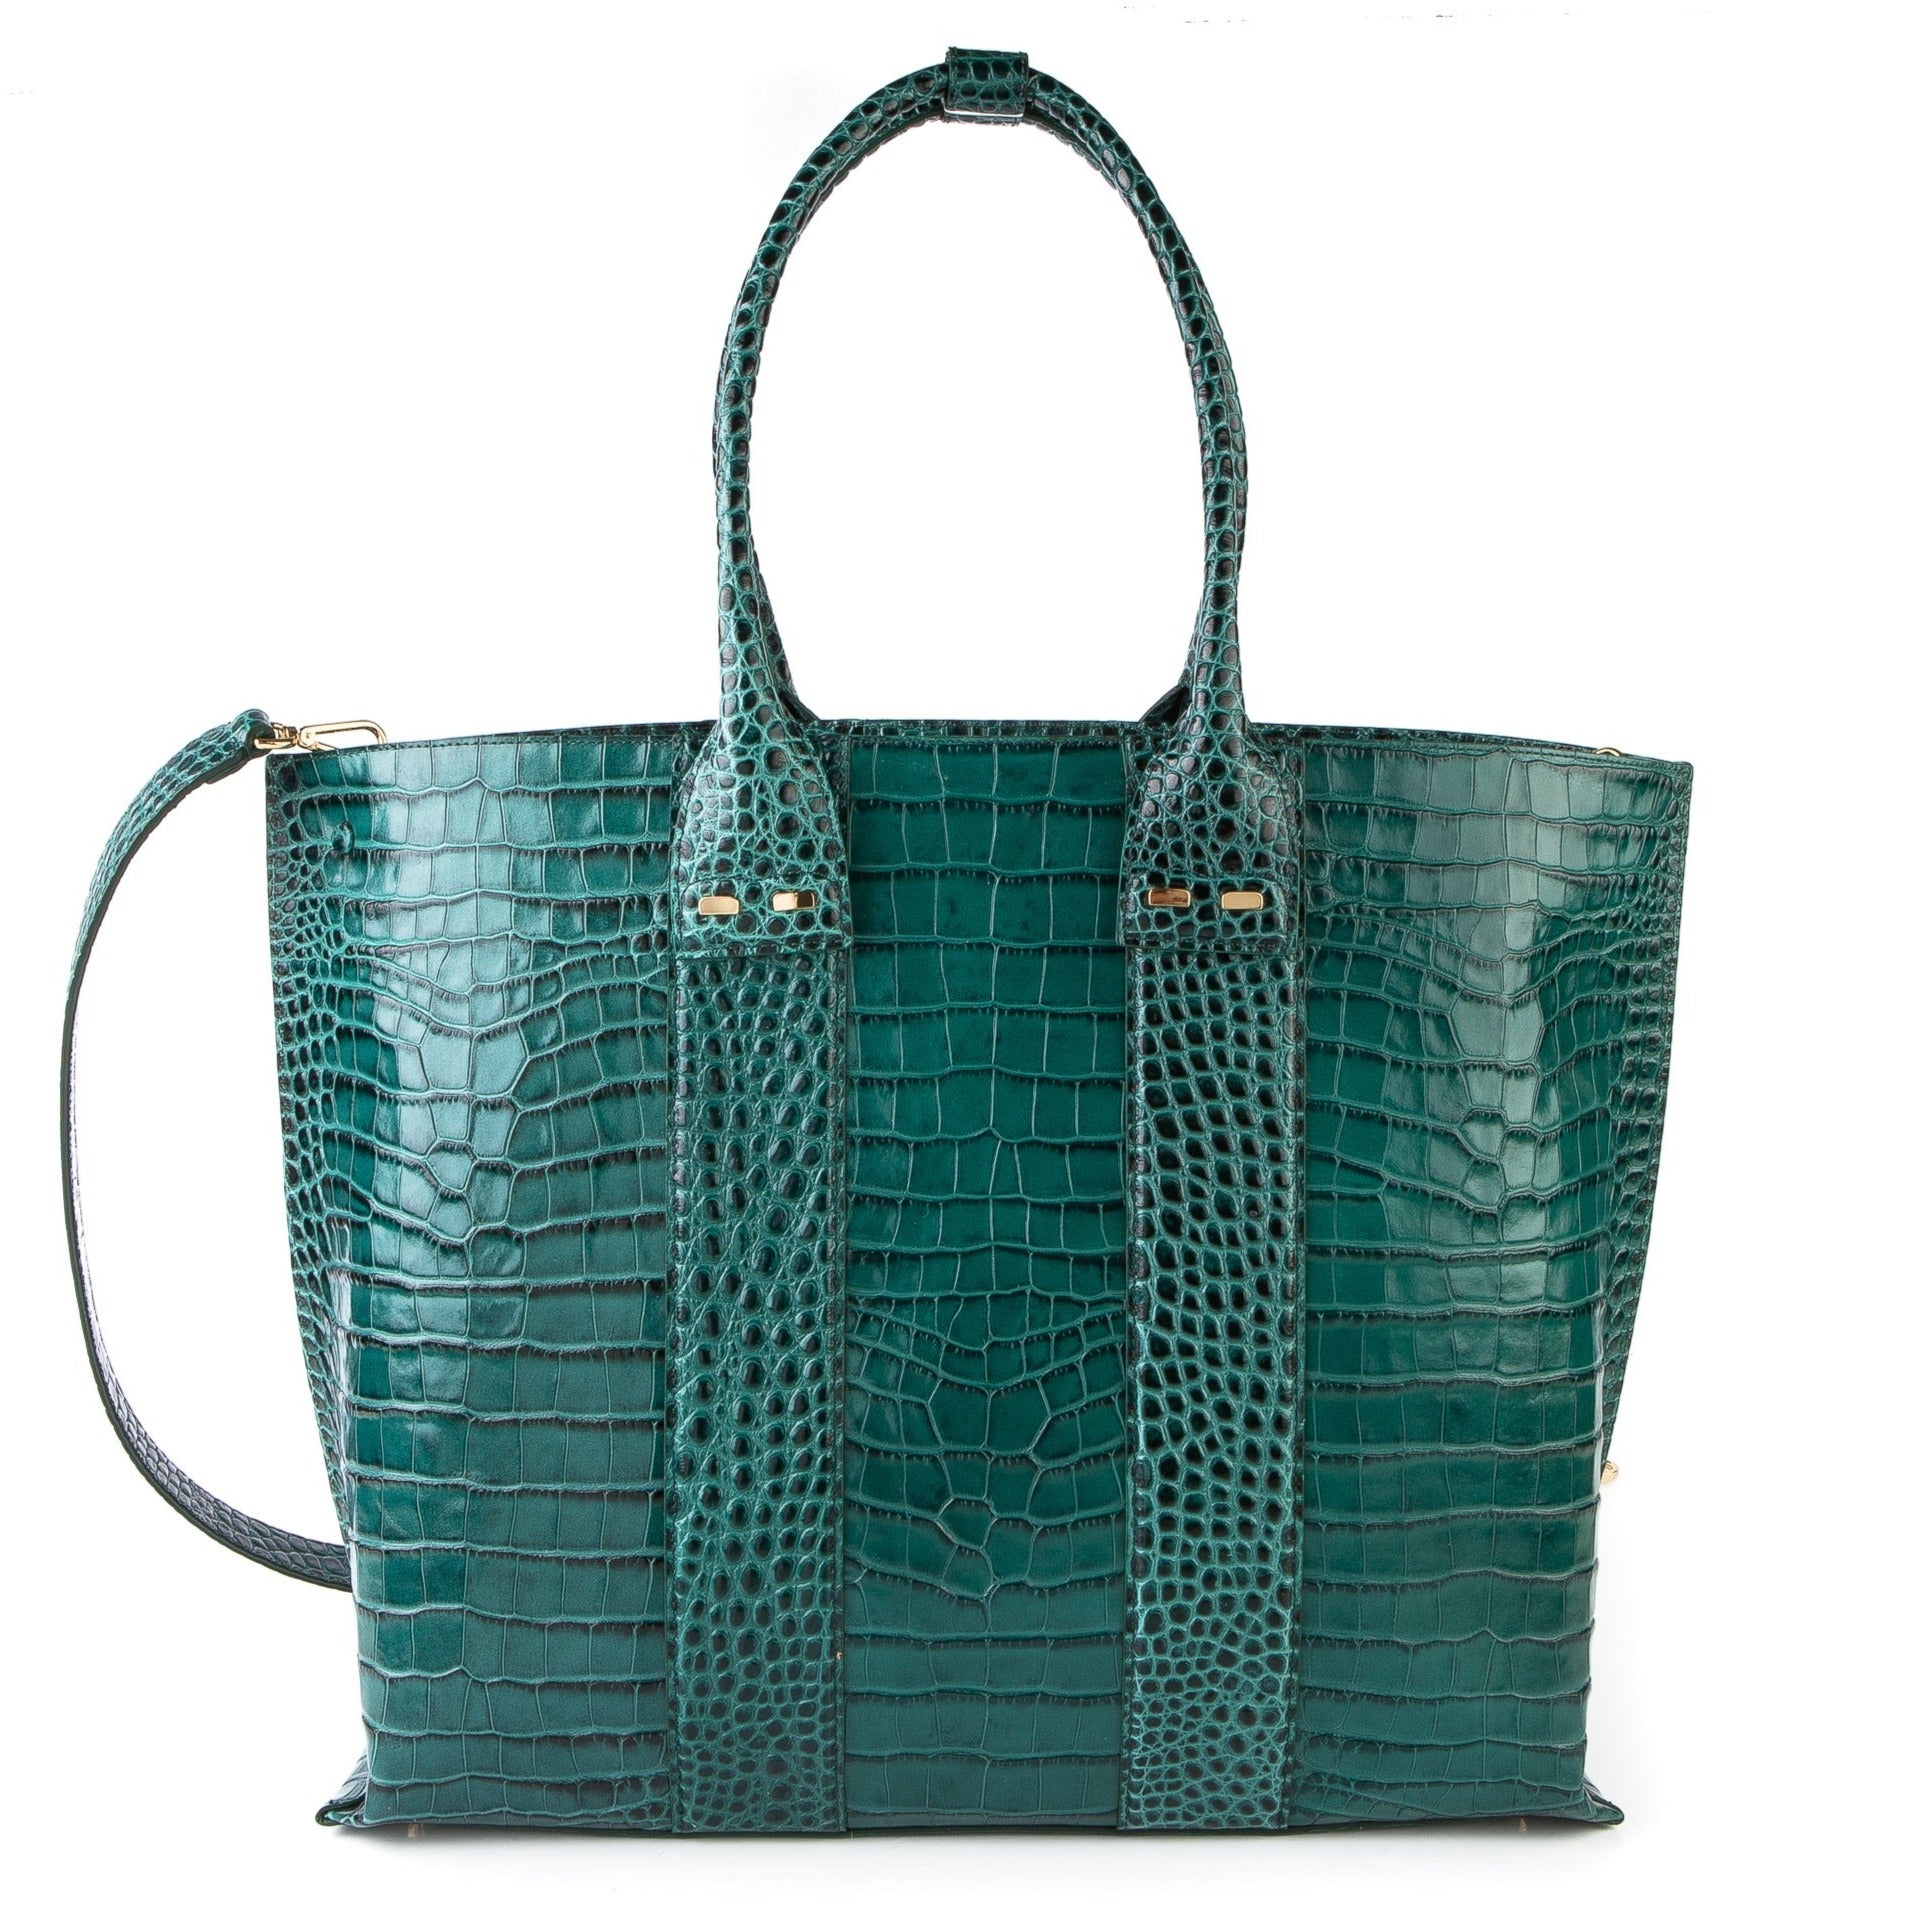 Stafford in Emerald Croc